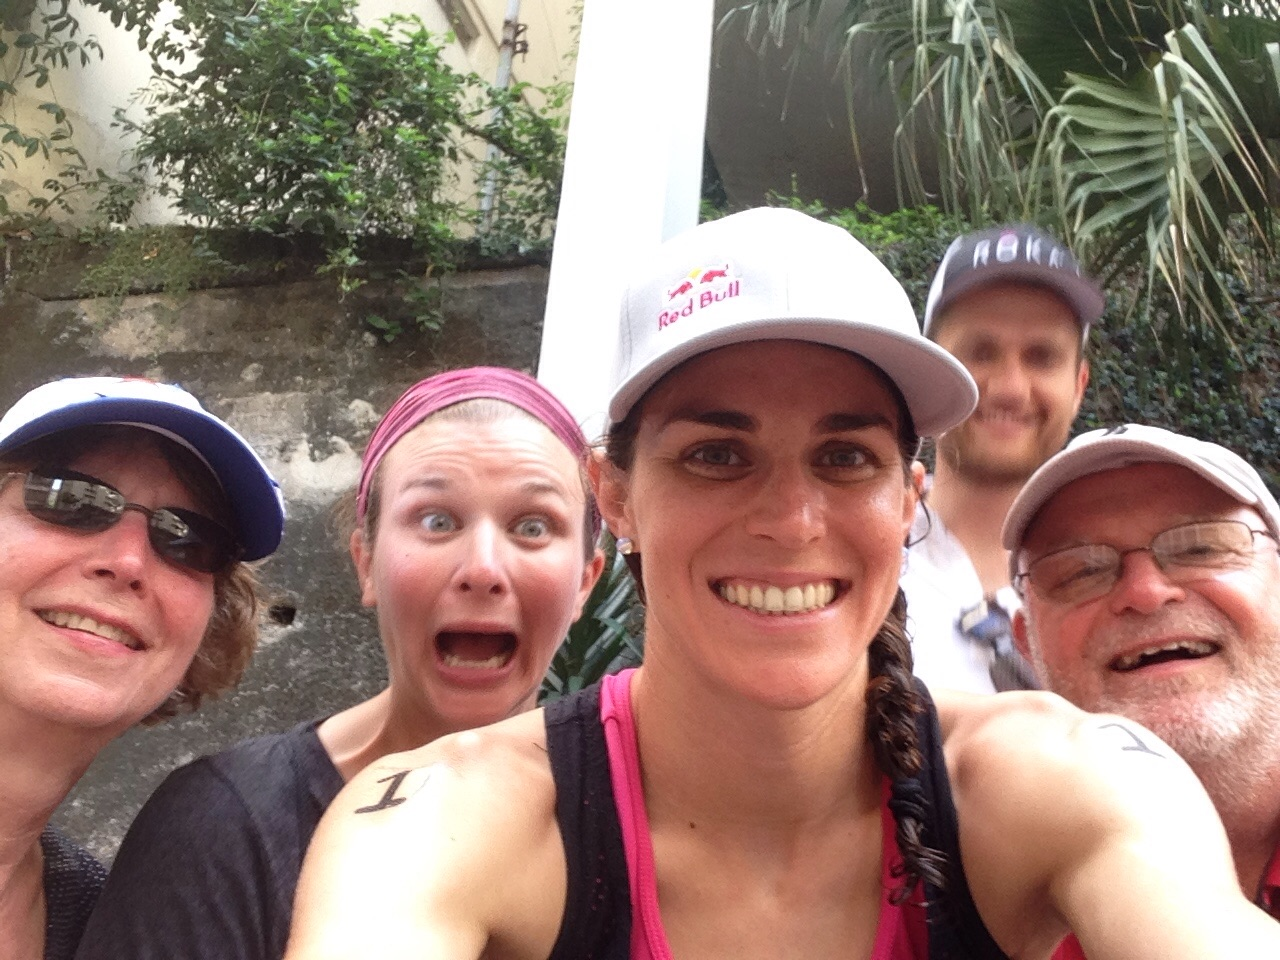 Post race selfie with the family while watching the men race